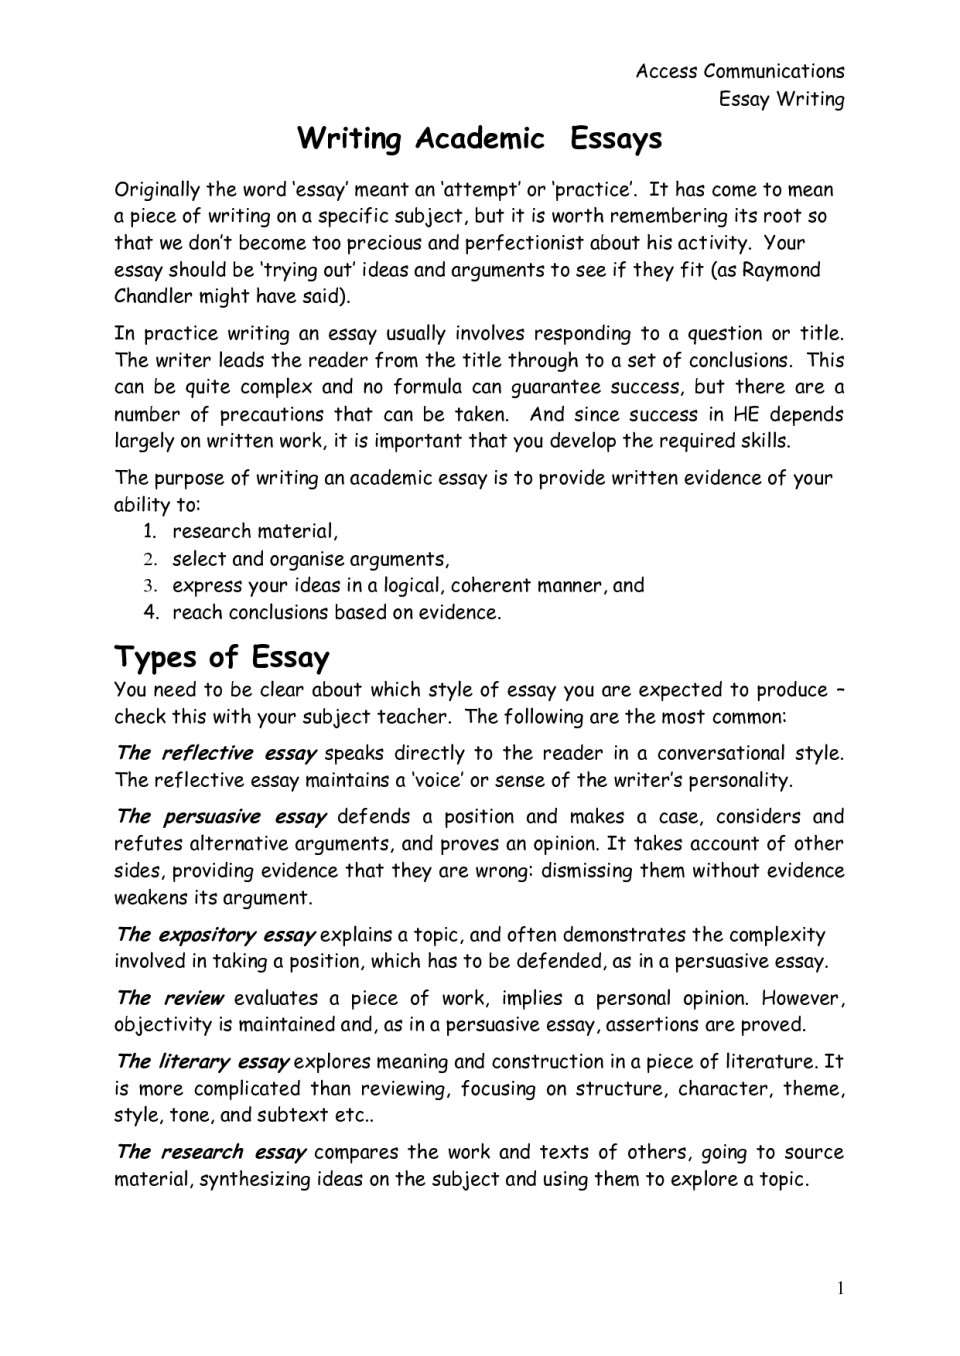 019 Write My Essay For Me Example Surprising Free Canada Online 960